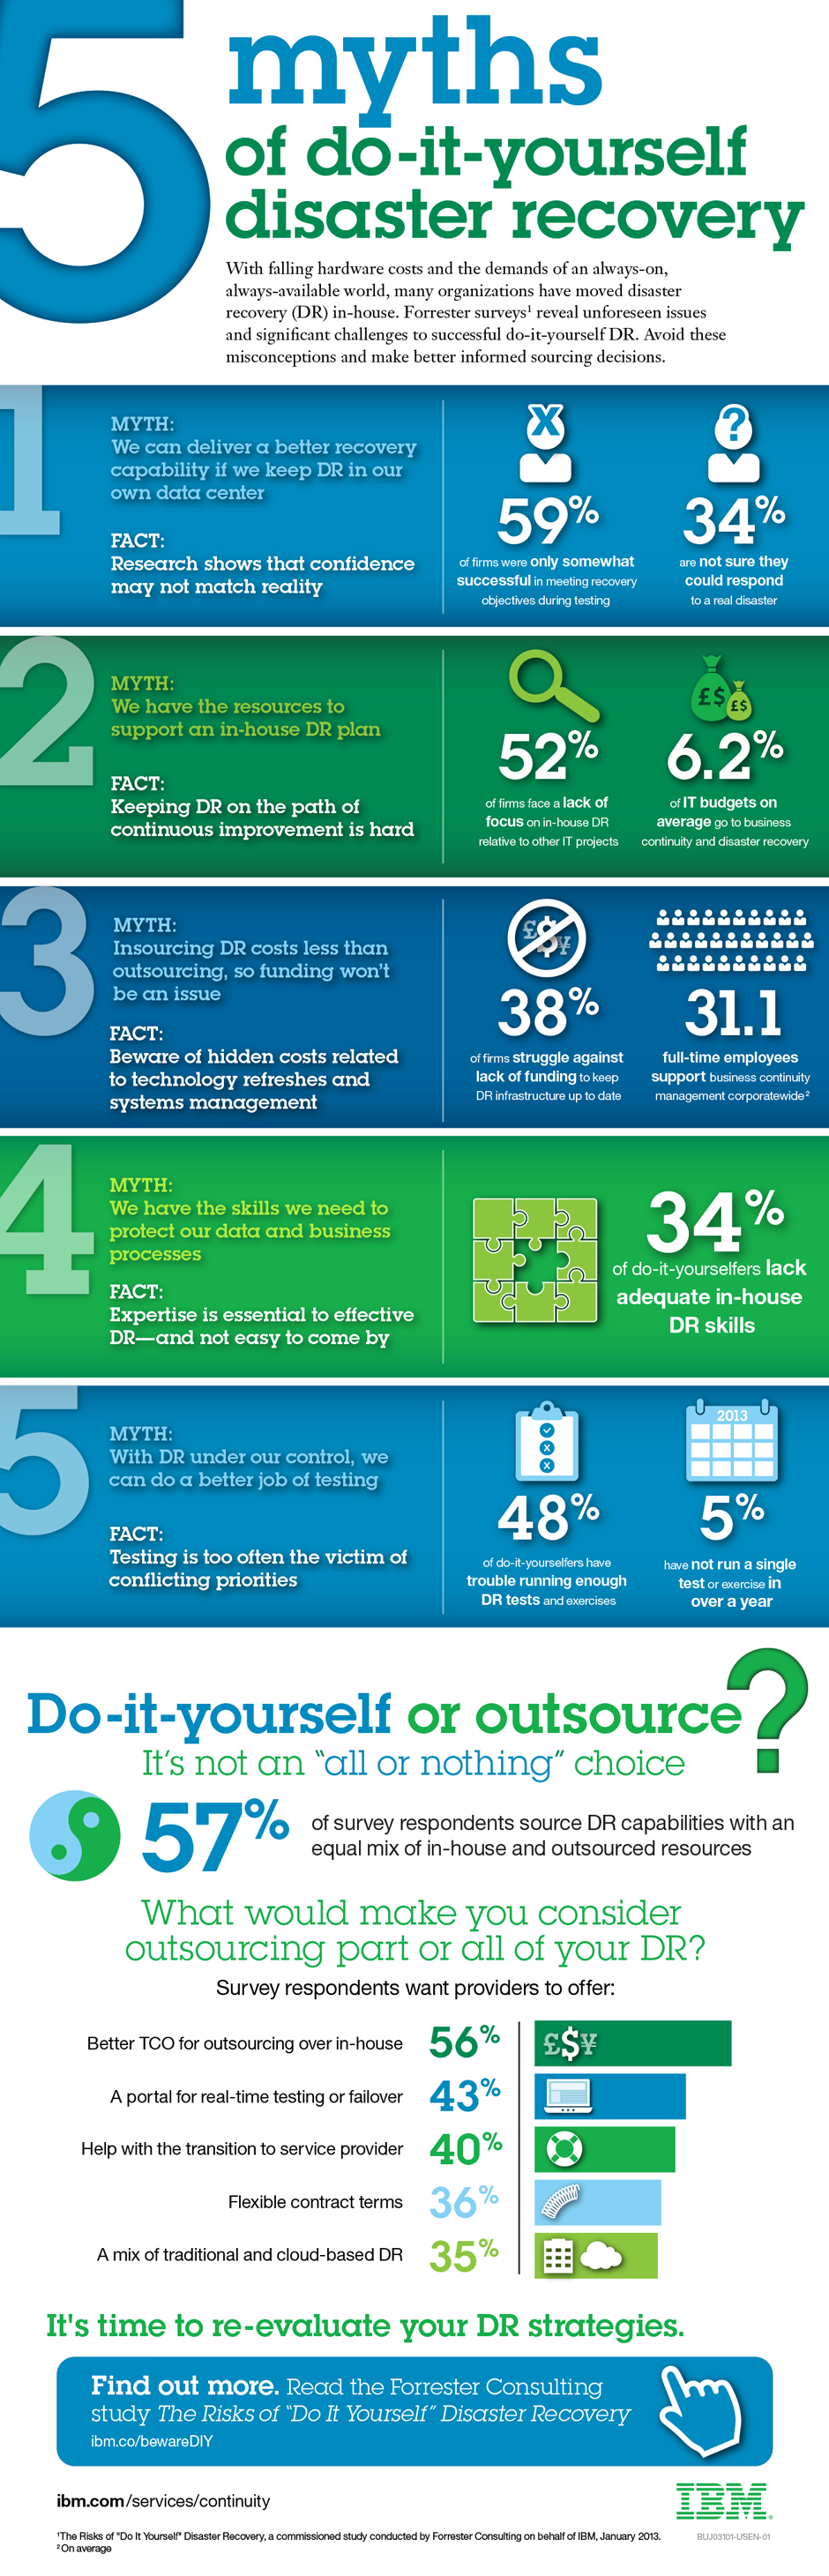 Do-it-yourself disaster recovery infographic